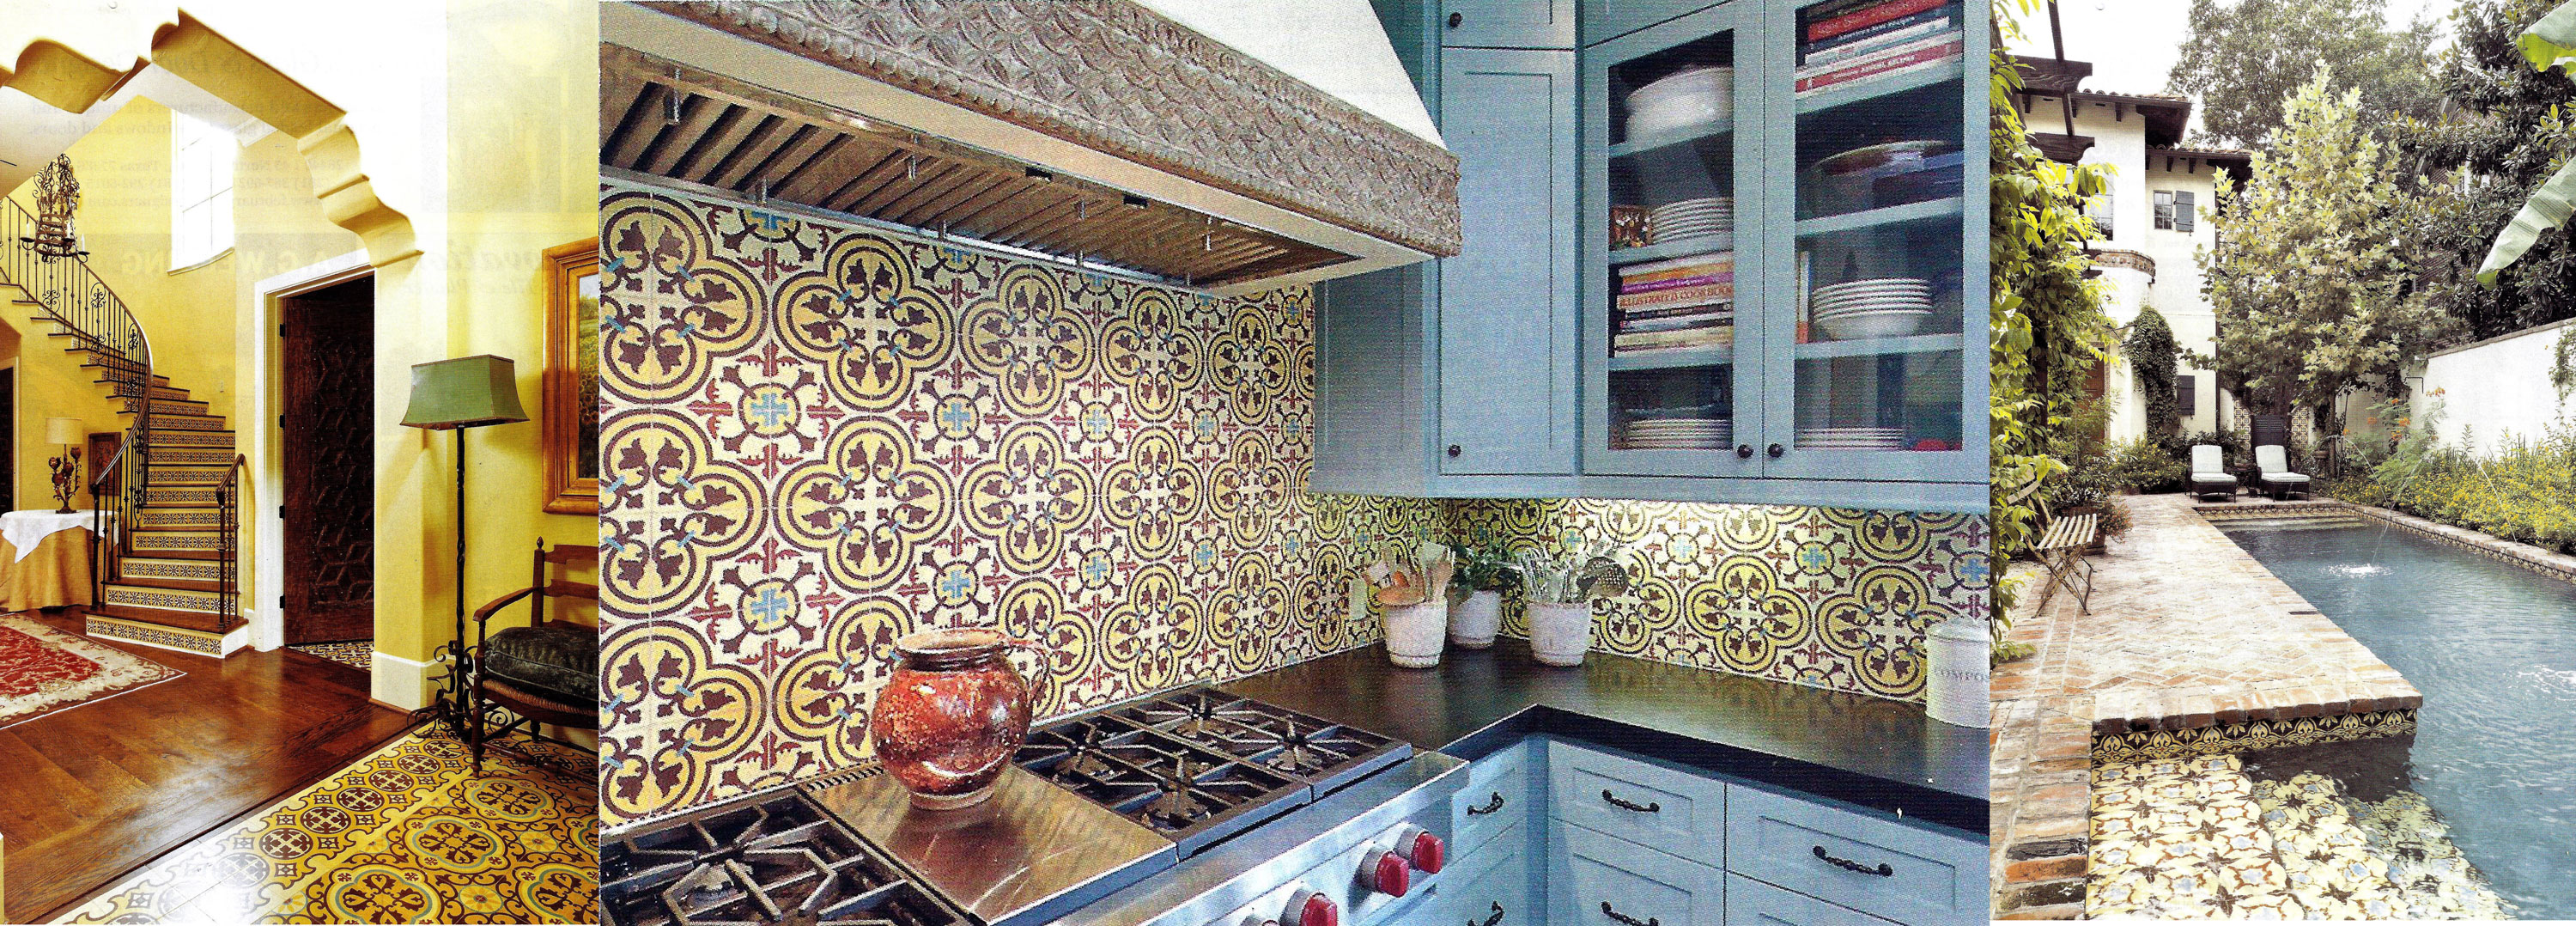 Among The Cement Tile Styles That Hamelet Used Were Barcelona On Stair Treads Cluny Concrete Kitchen S Backsplash And Sofia Encaustic